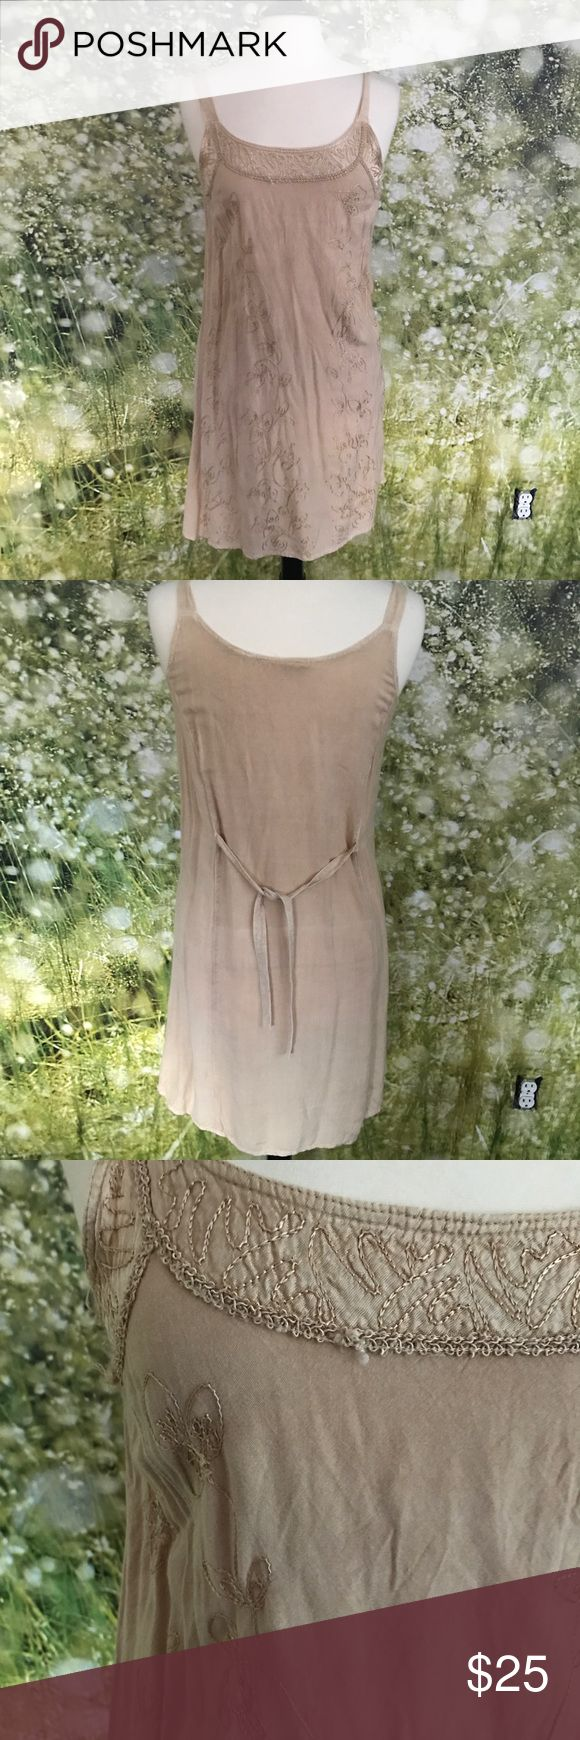 Vintage sun dress size M Vintage rayon dress with fun detail (close up pictured), size medium, nude/neutral tan color, ribbon ties on the back Vintage Dresses